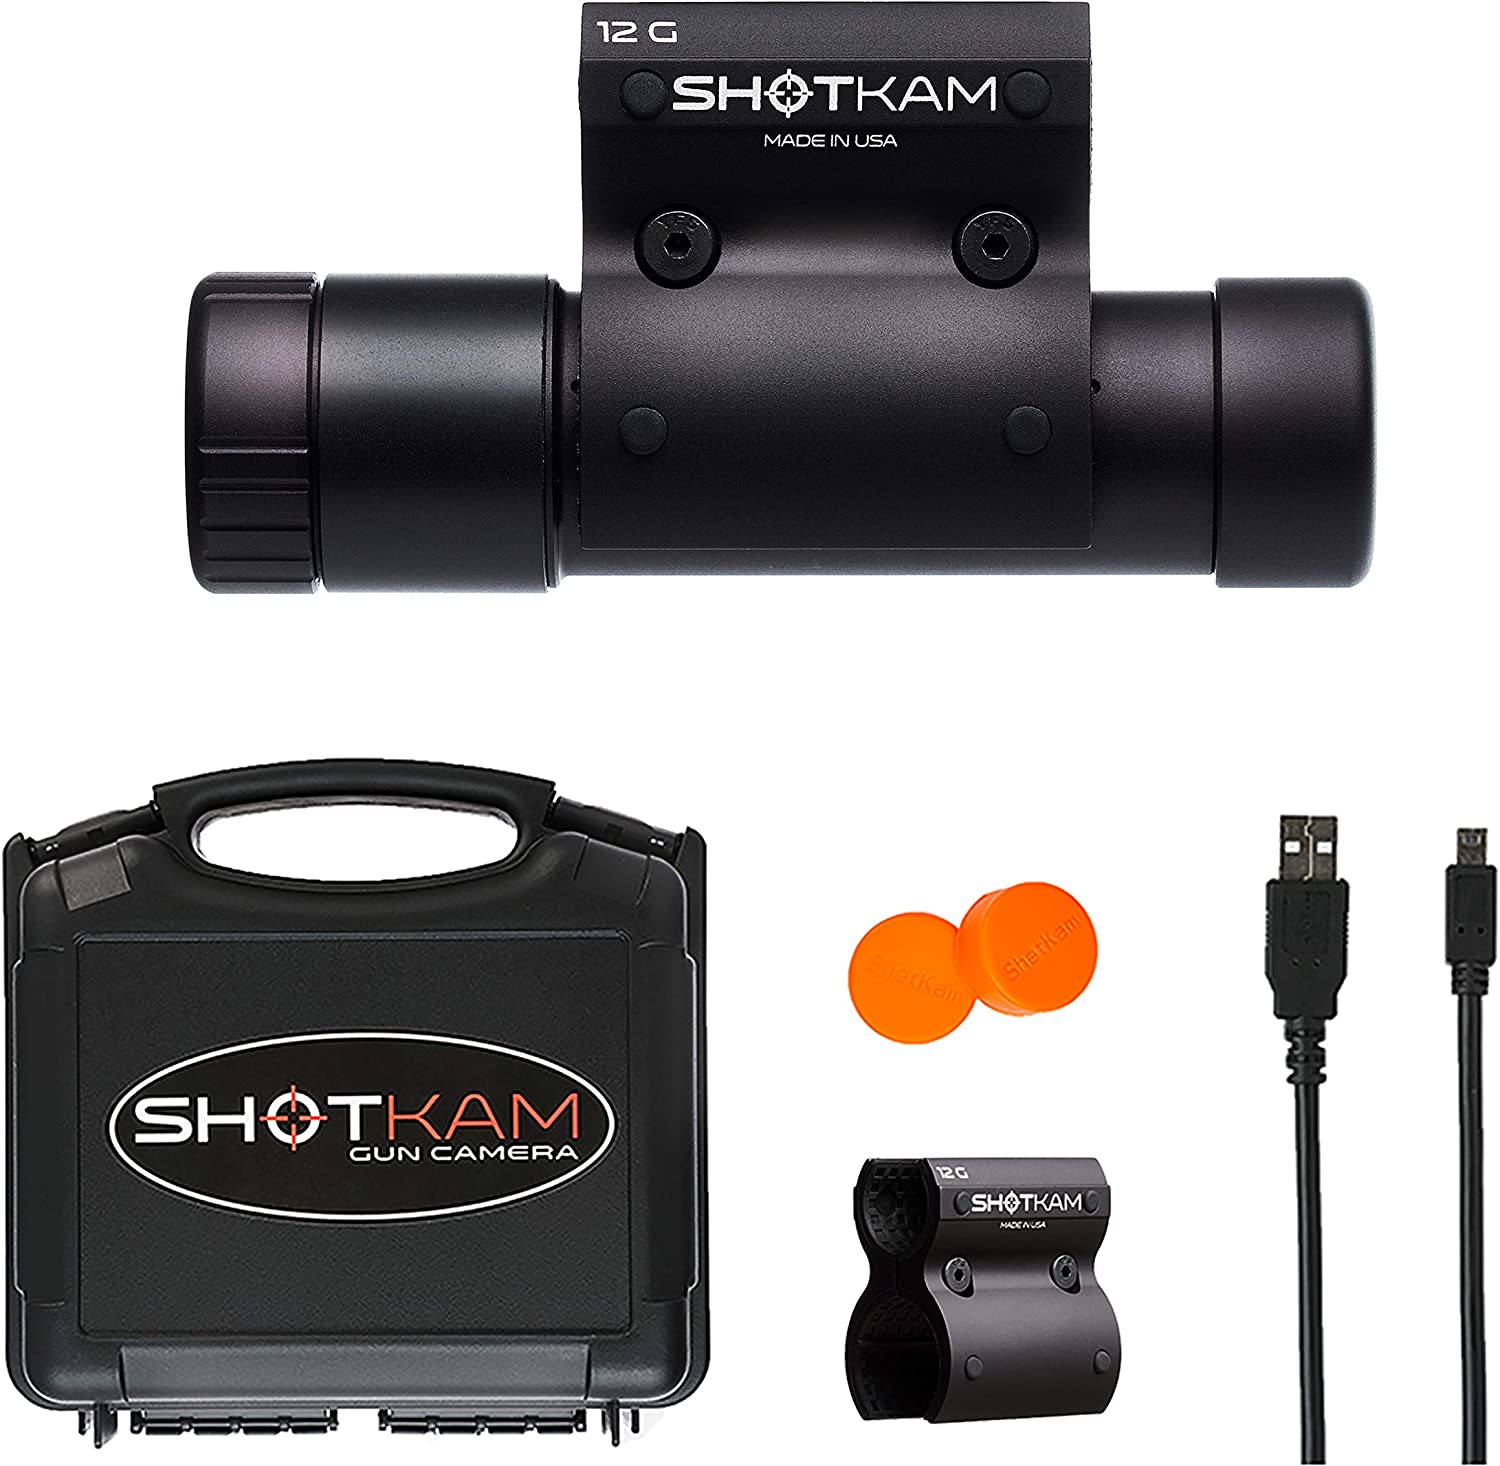 ShotKam 12-Gauge Model 3rd Gen – Digital Action Camera with Mounting Bracket for Clay Target Sports and Hunting, Black